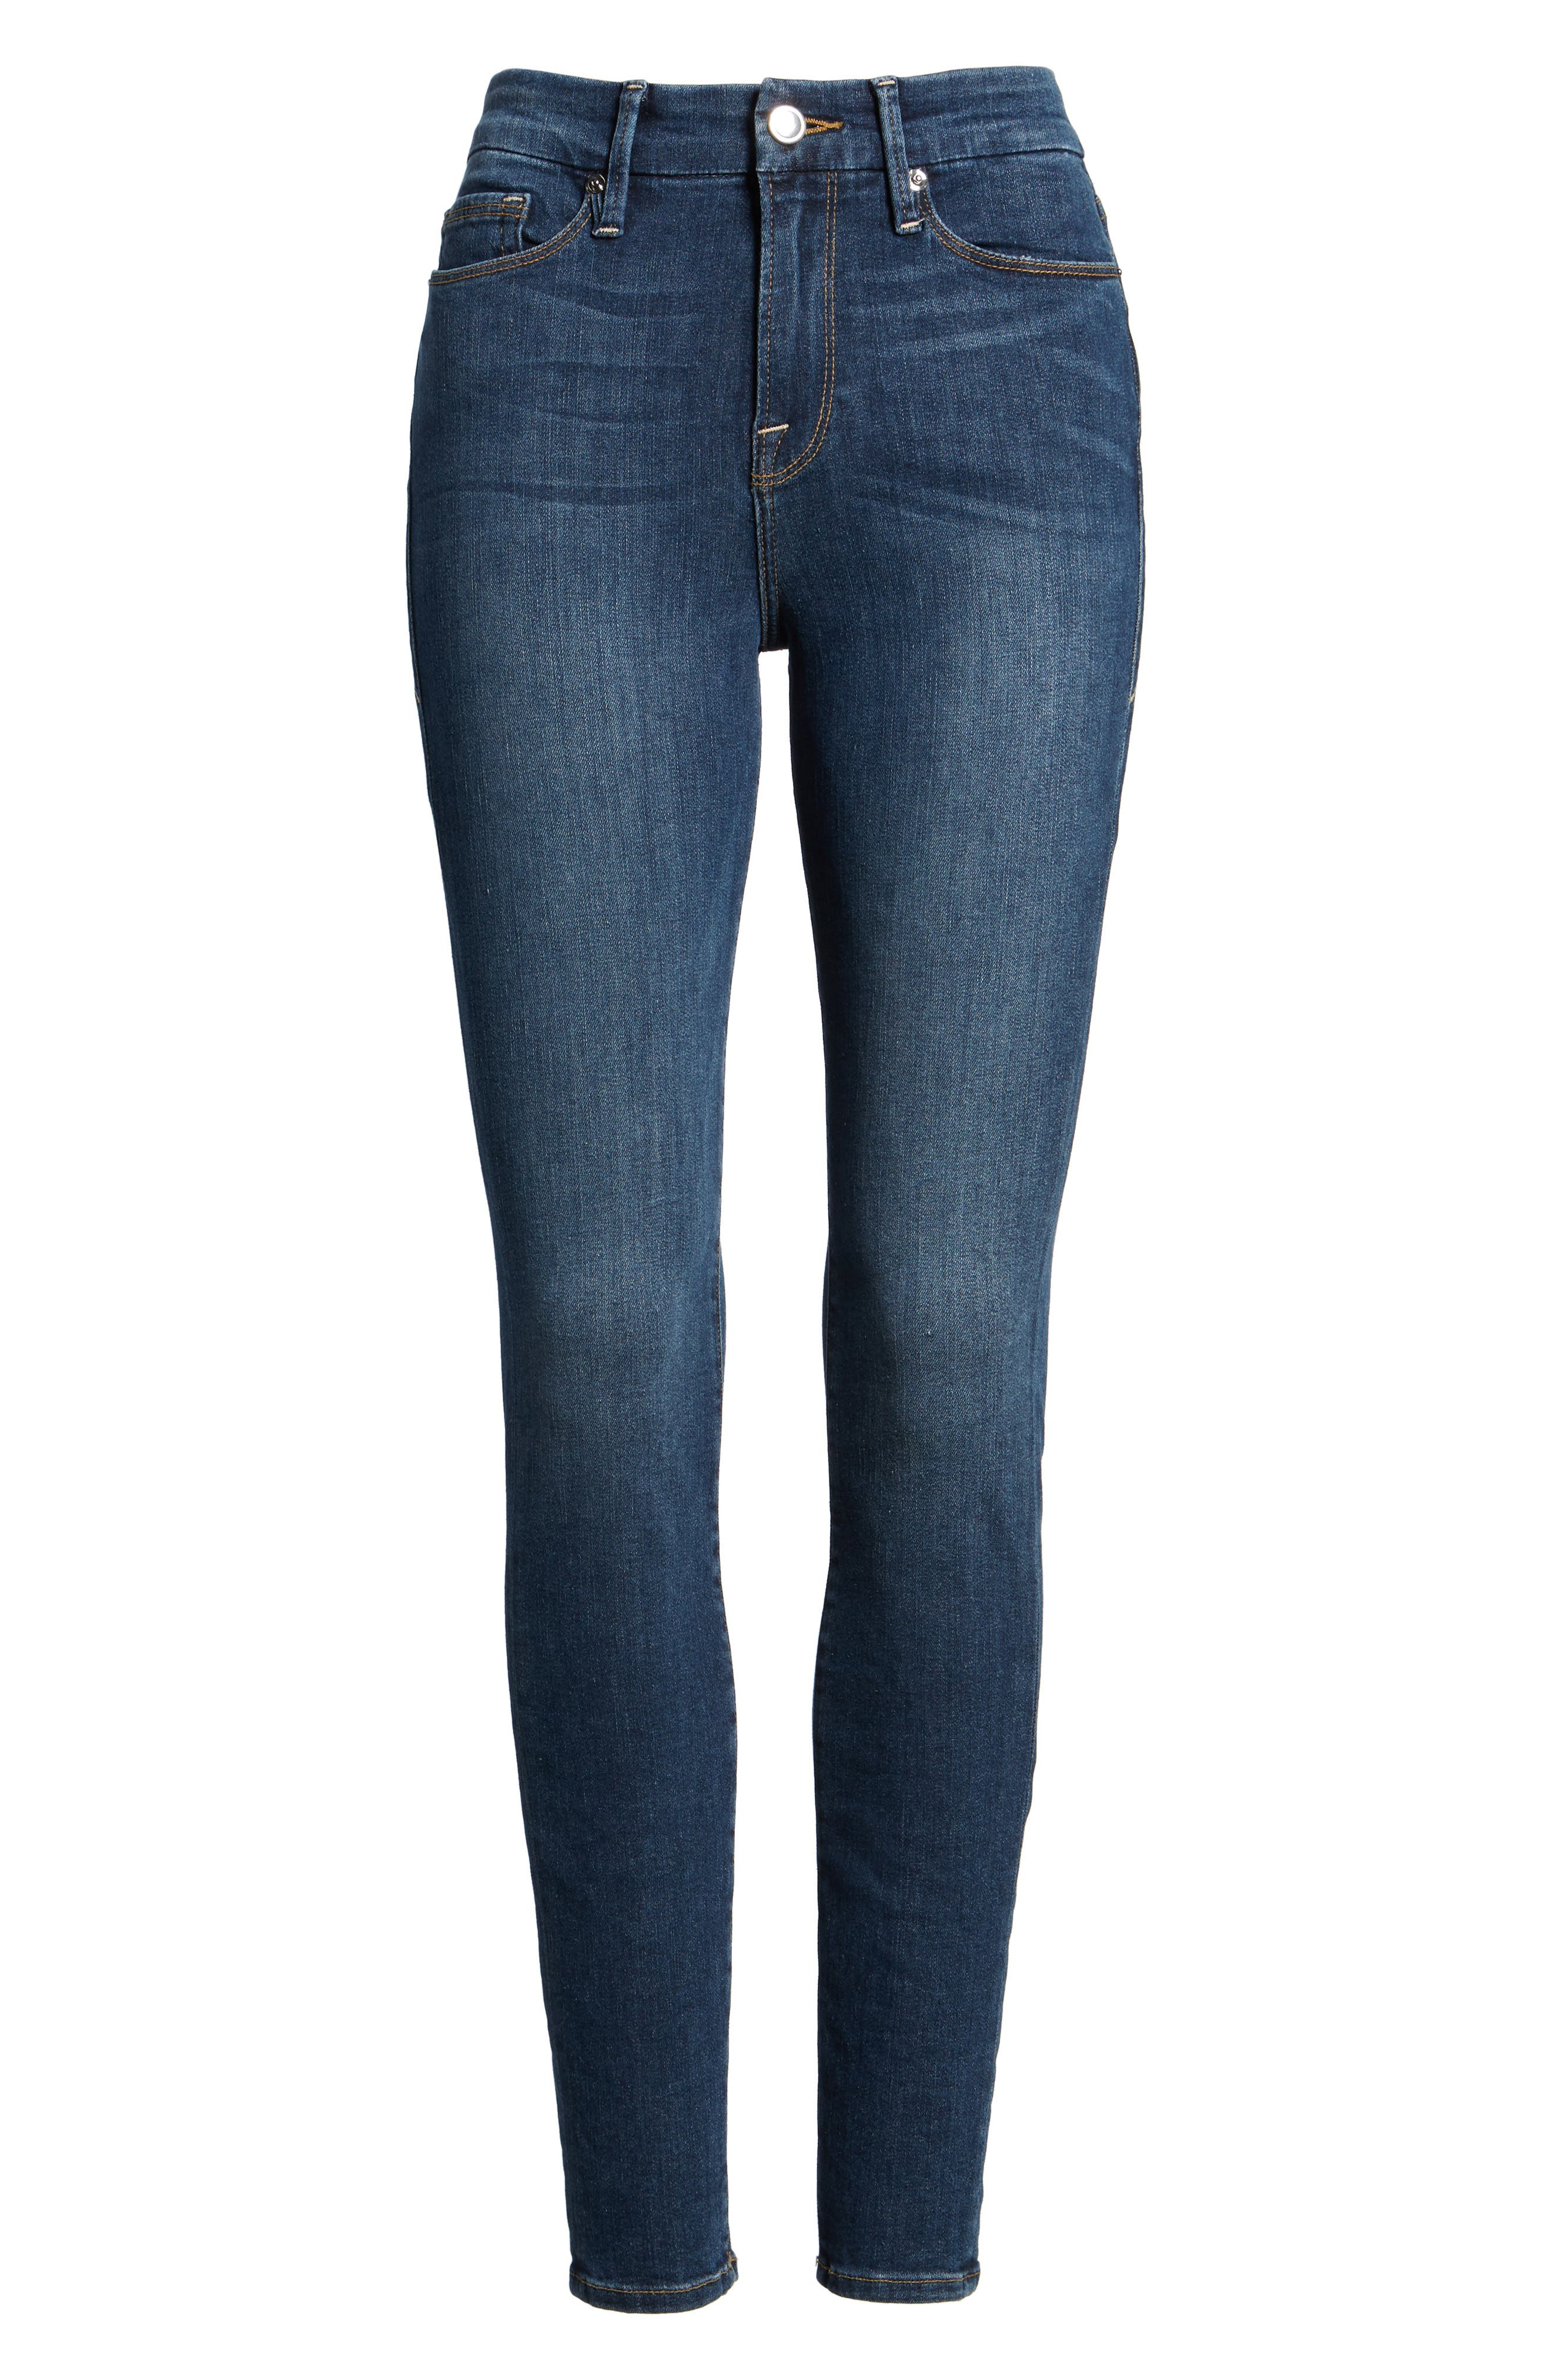 GOOD AMERICAN, Good Legs High Rise Skinny Jeans, Alternate thumbnail 6, color, BLUE 004